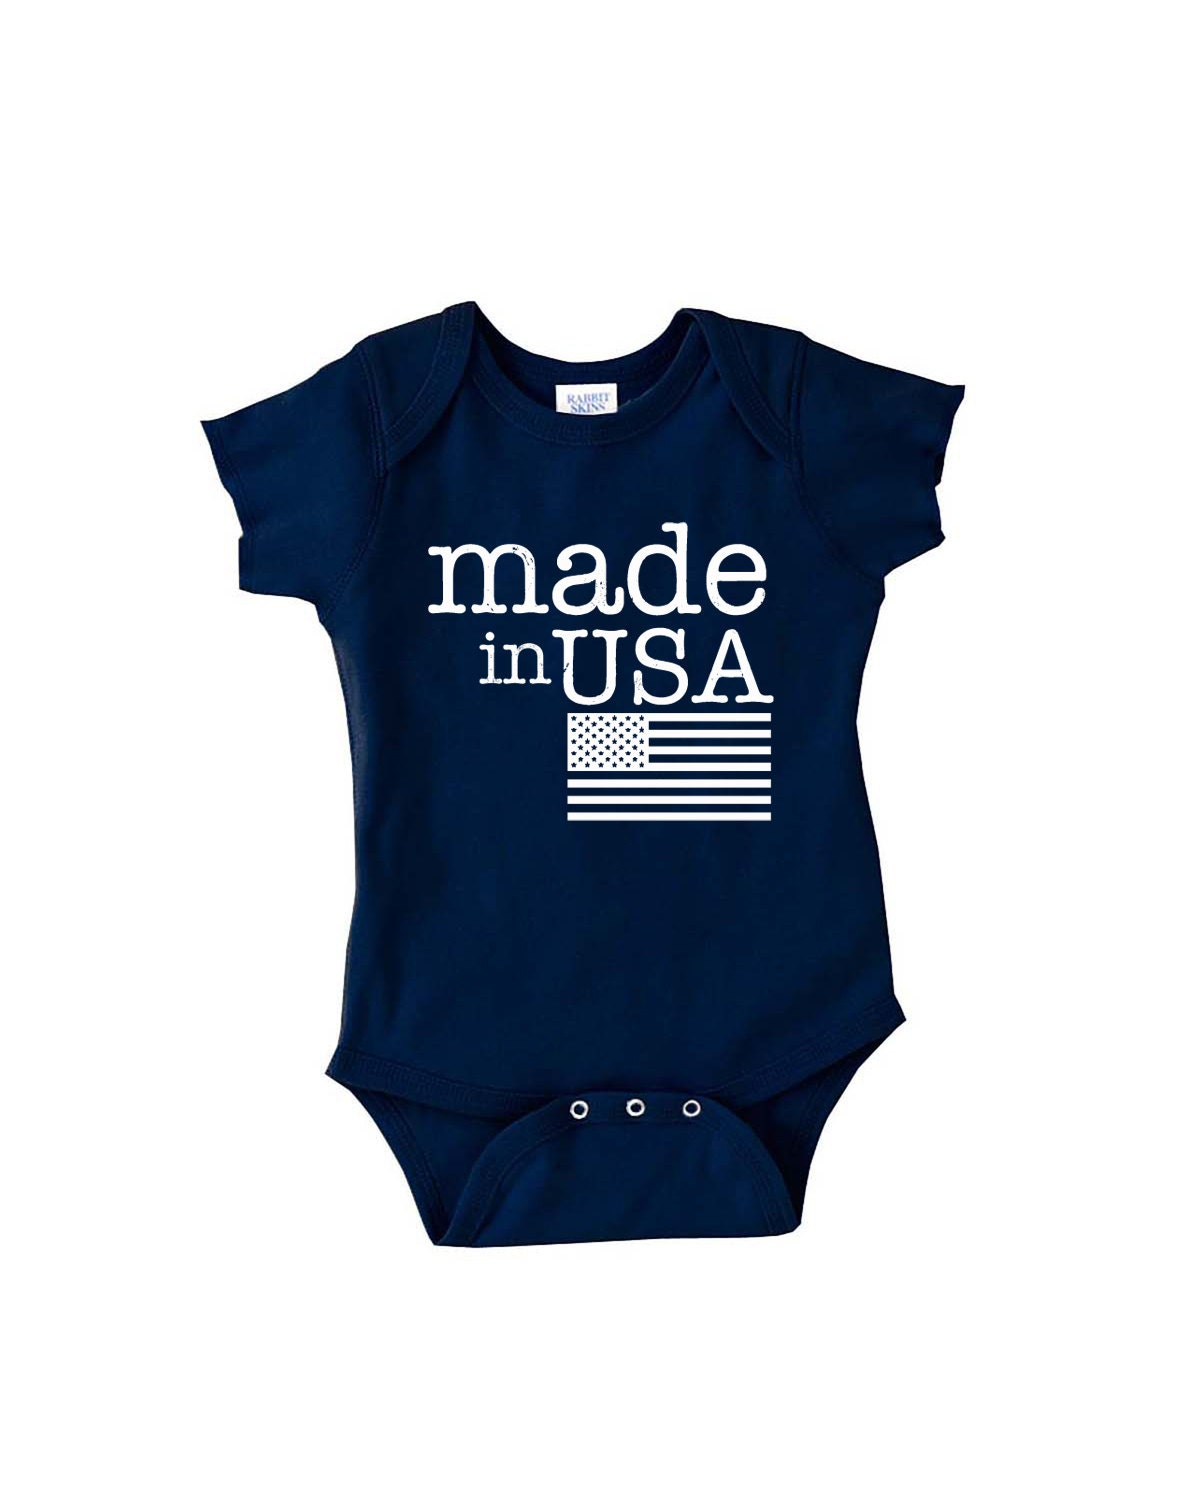 Organic baby clothes made in the USA with care! A beautiful natural baby gift for any new parent.